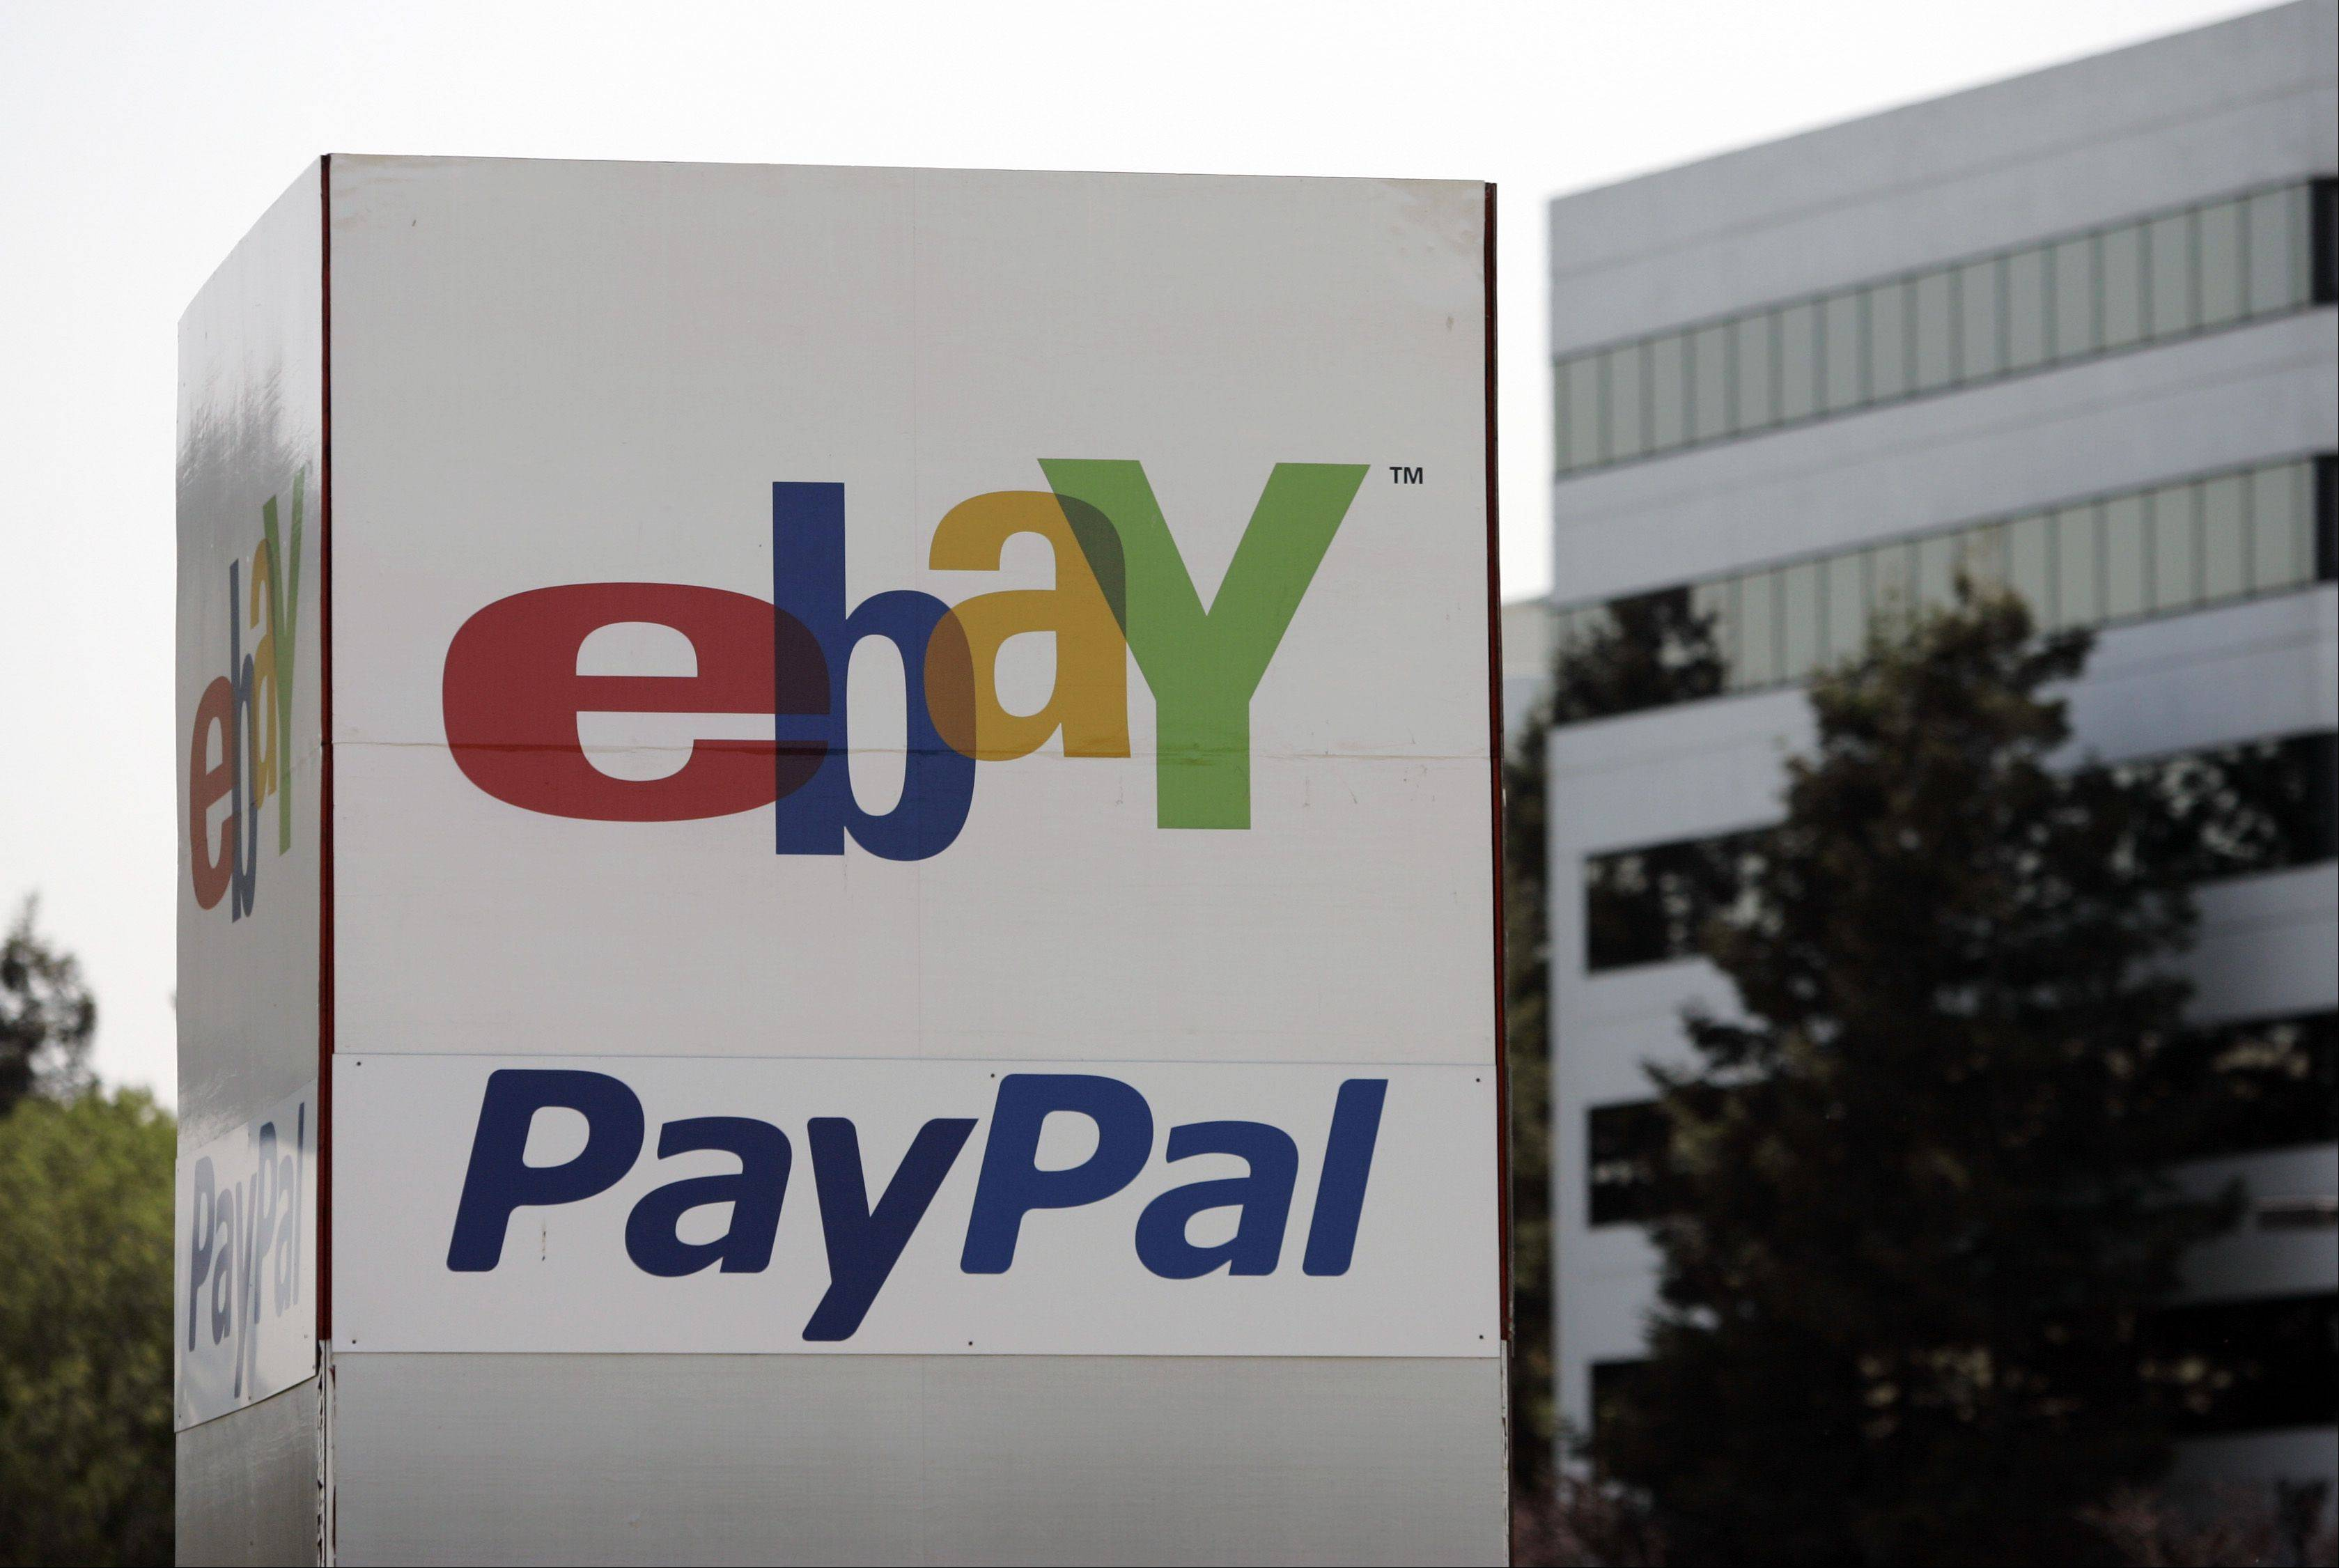 Ebay is riding the nation's rising interest in doing business online.